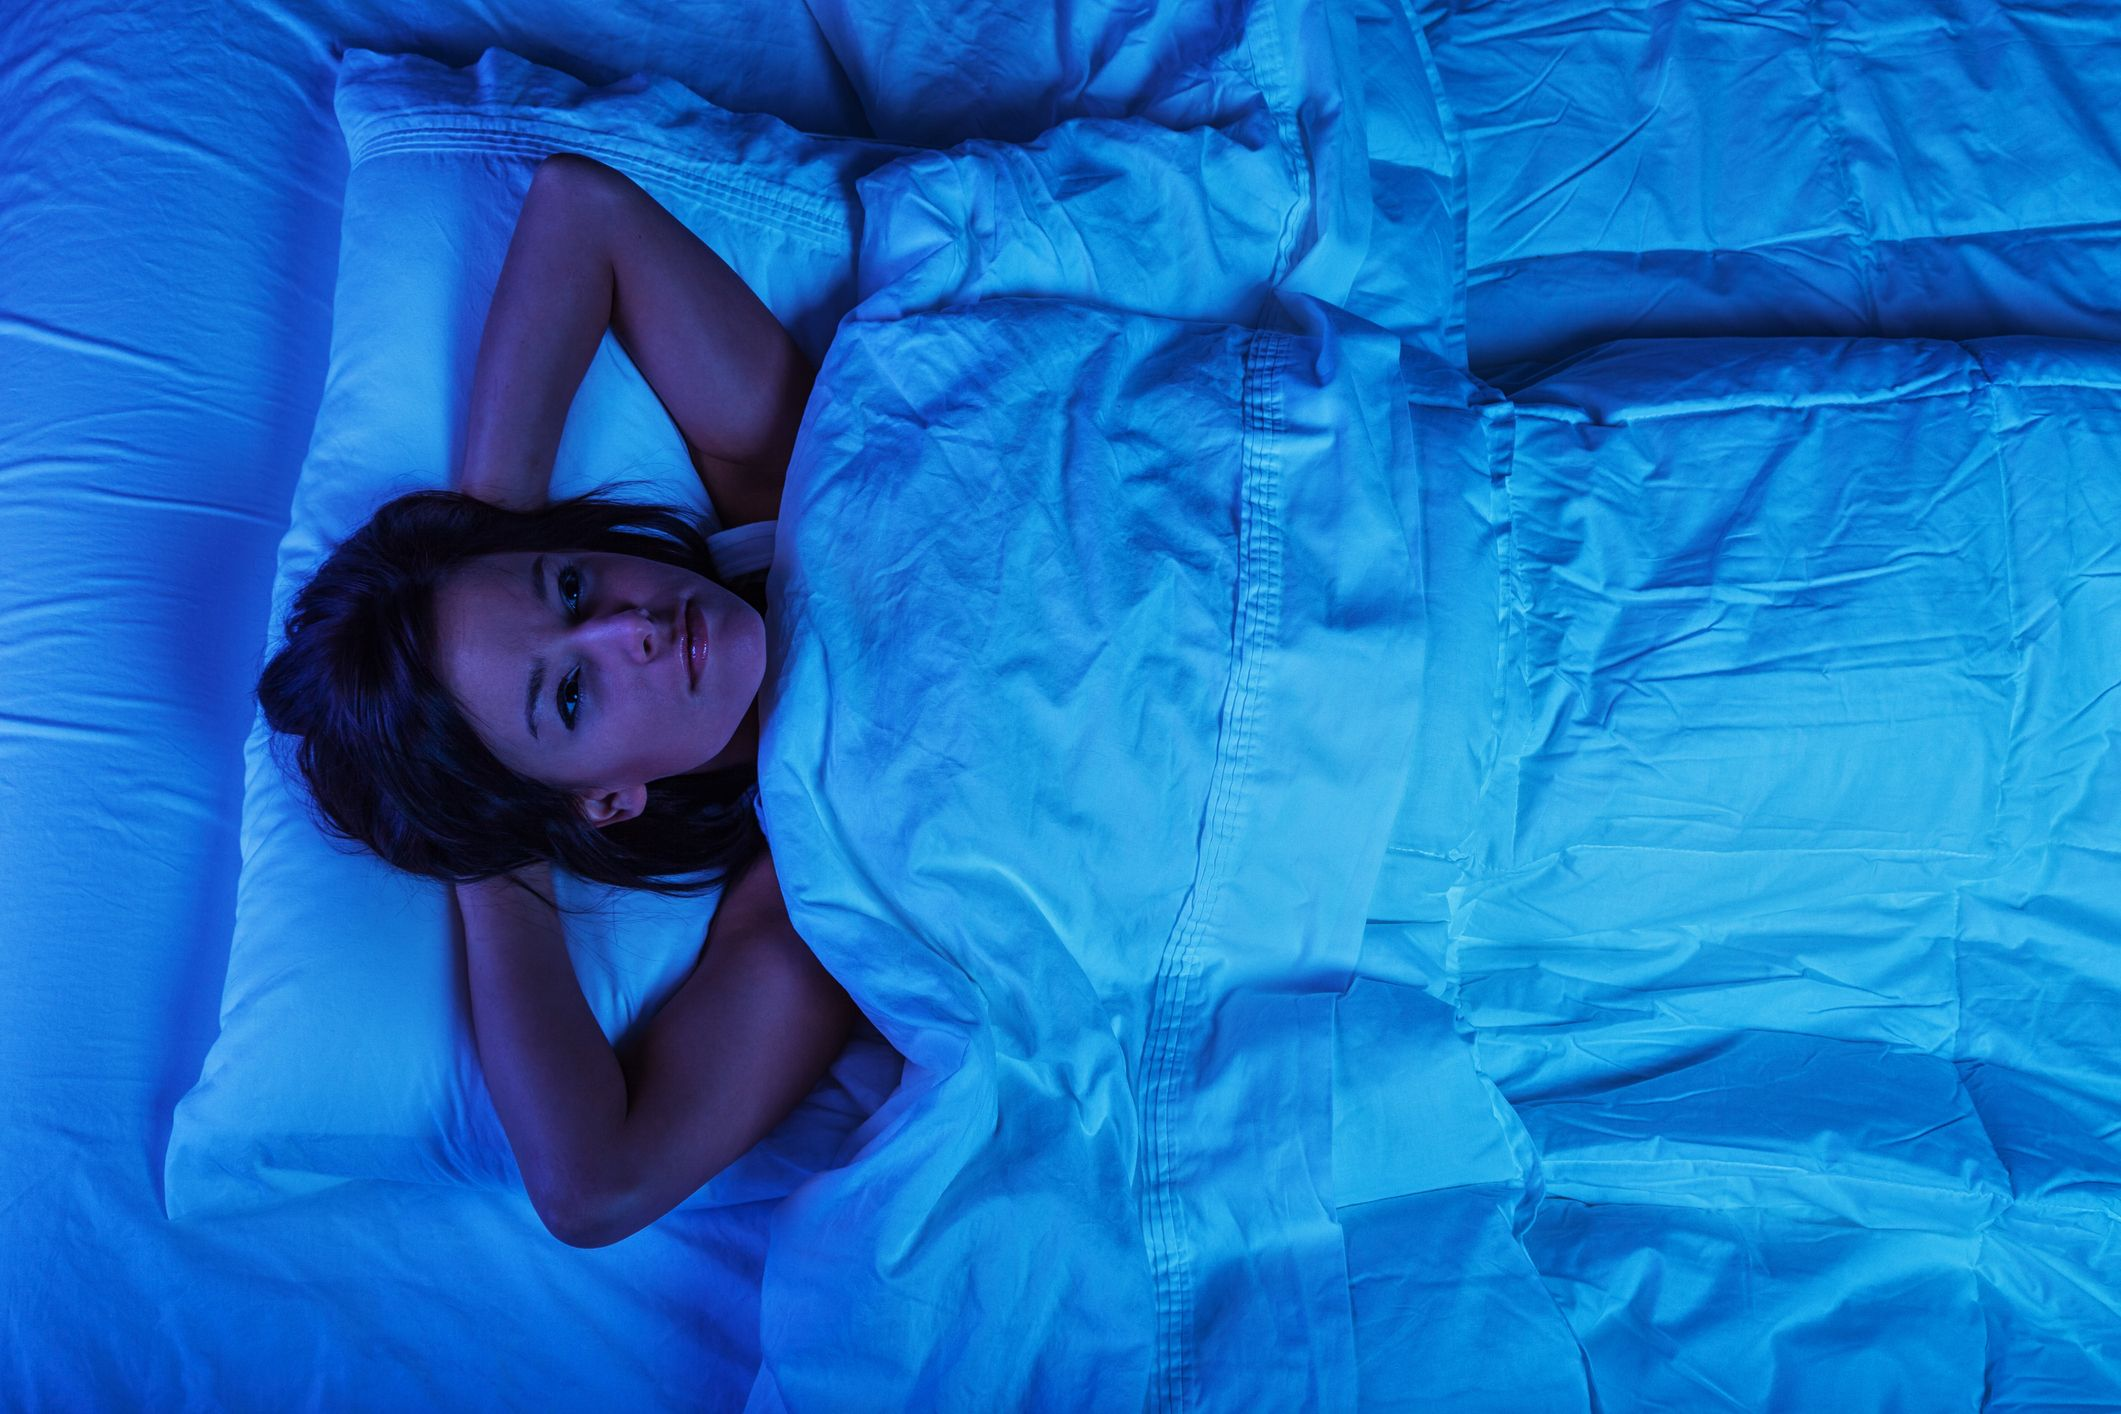 Ways to get to sleep: 3 sleep techniques to help you drop off